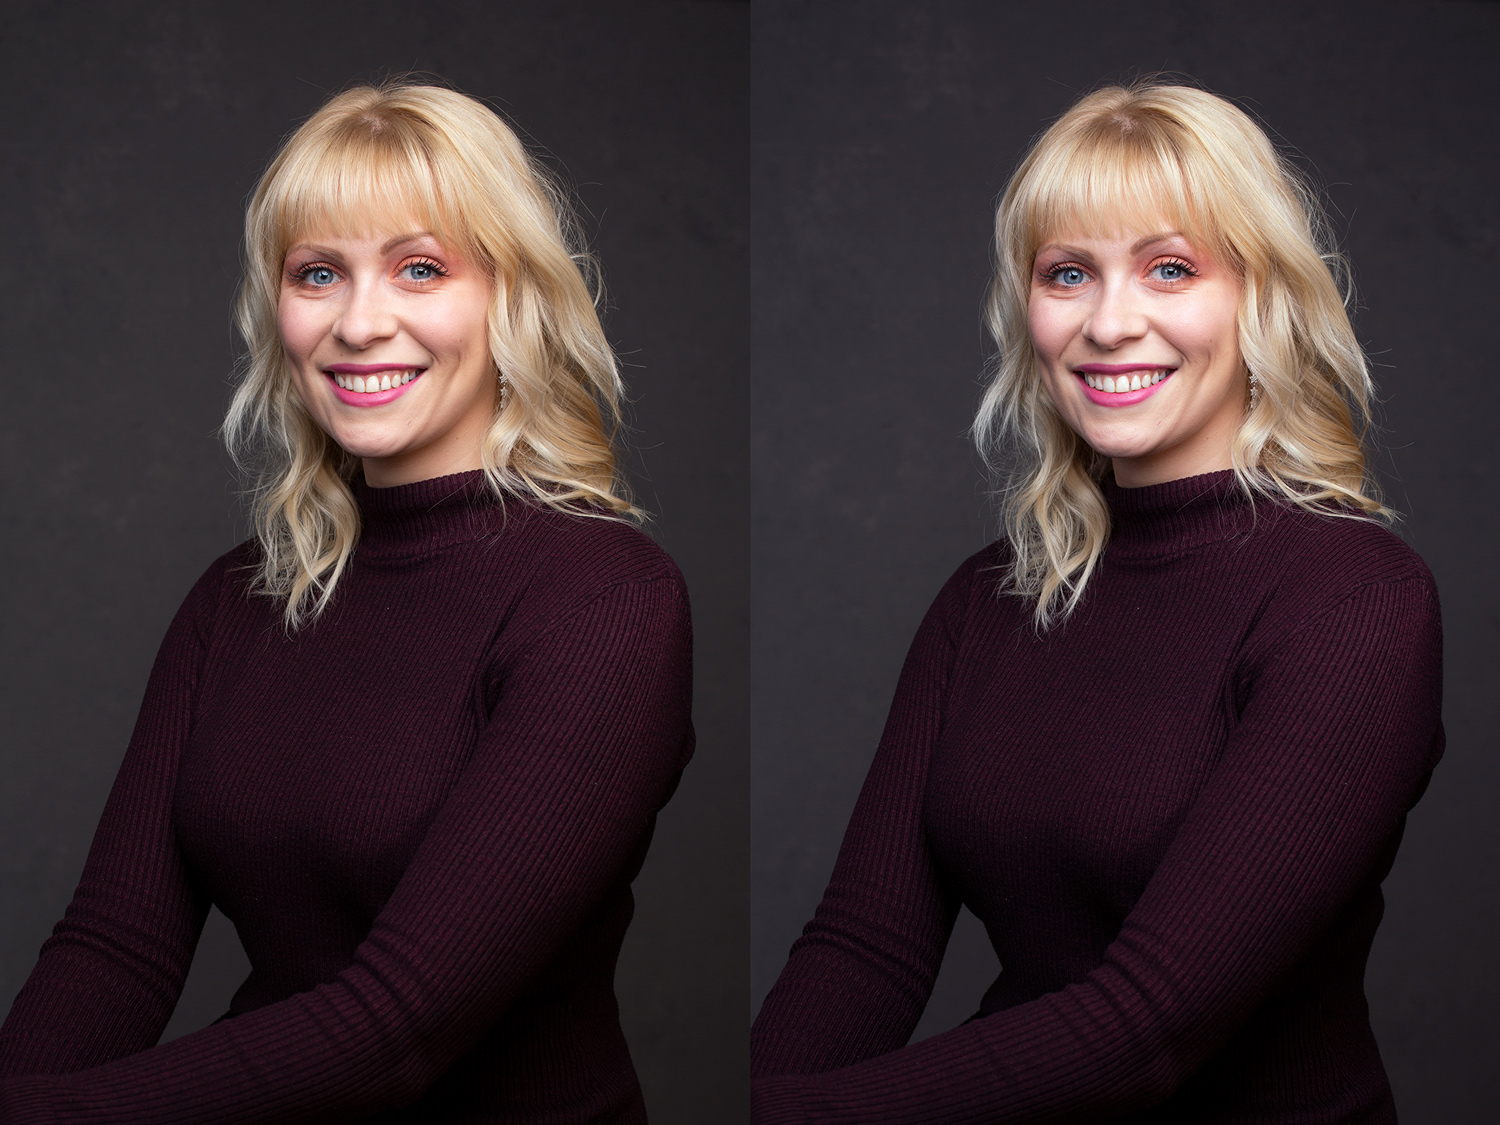 before and after Photoshop Color Balance